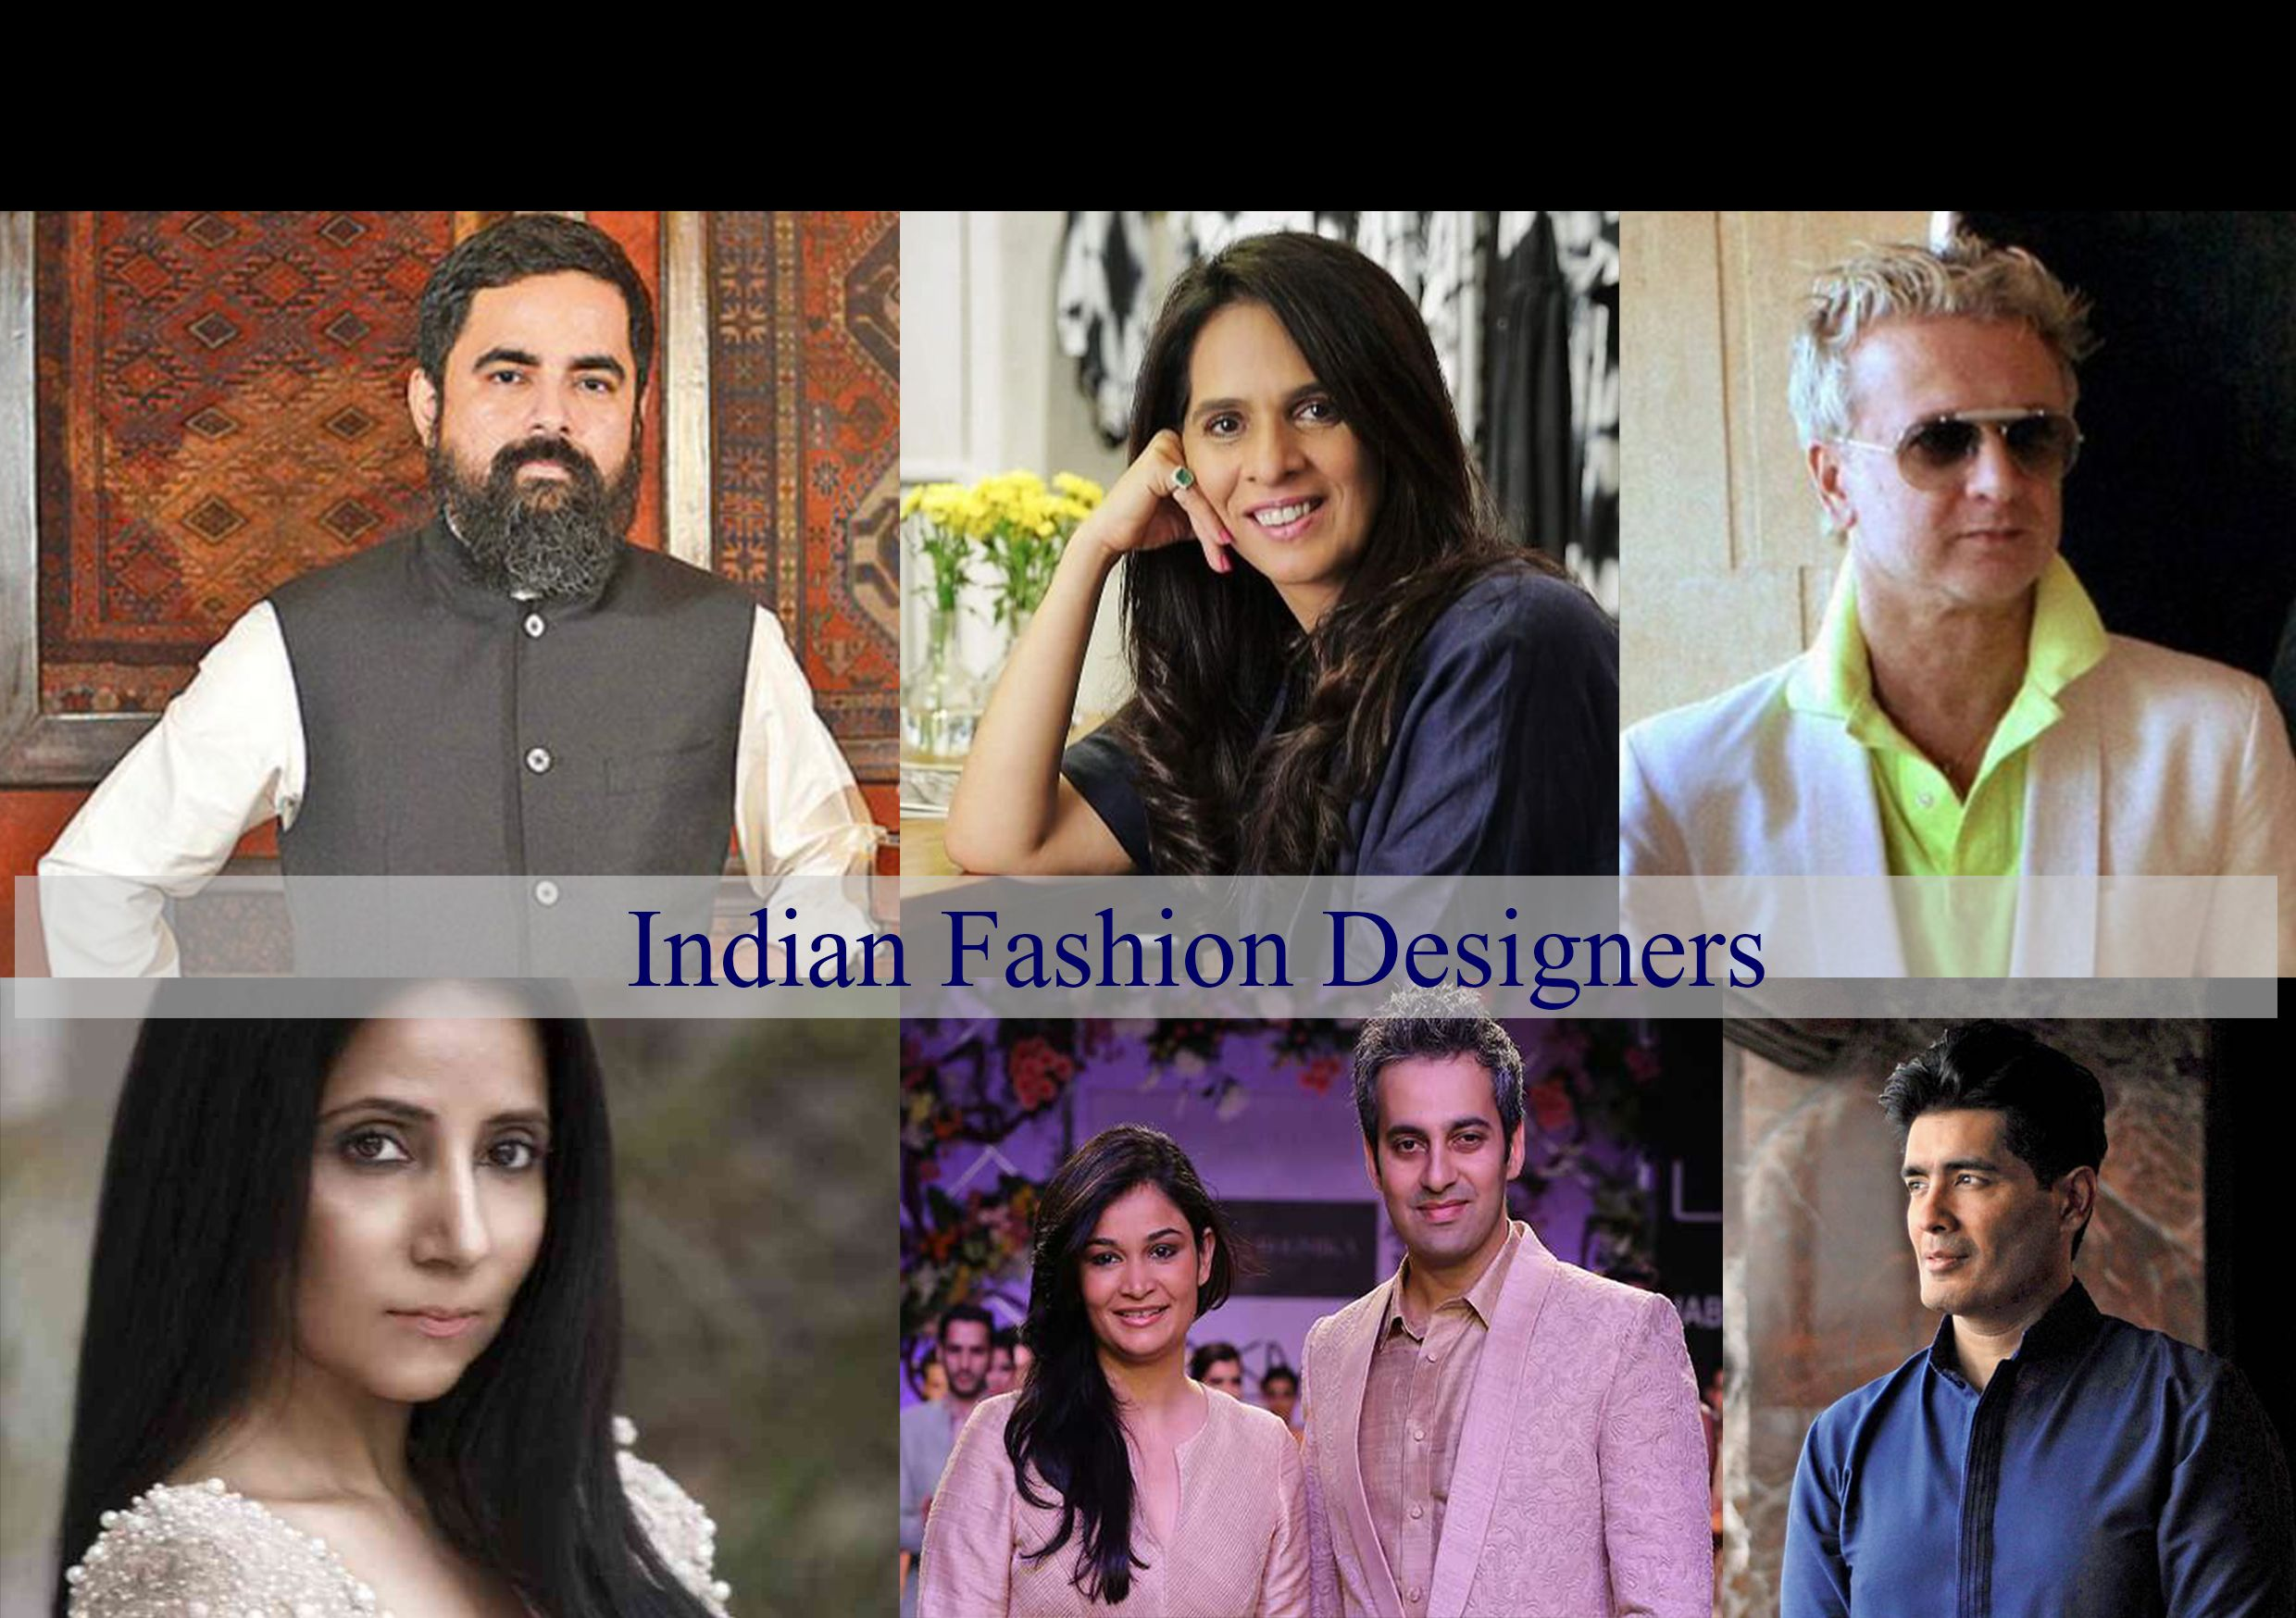 Famous Fashion Designers Indian Wear Fashion Designers Fashion Designers Famous Indian Fashion Designers Fashion Design